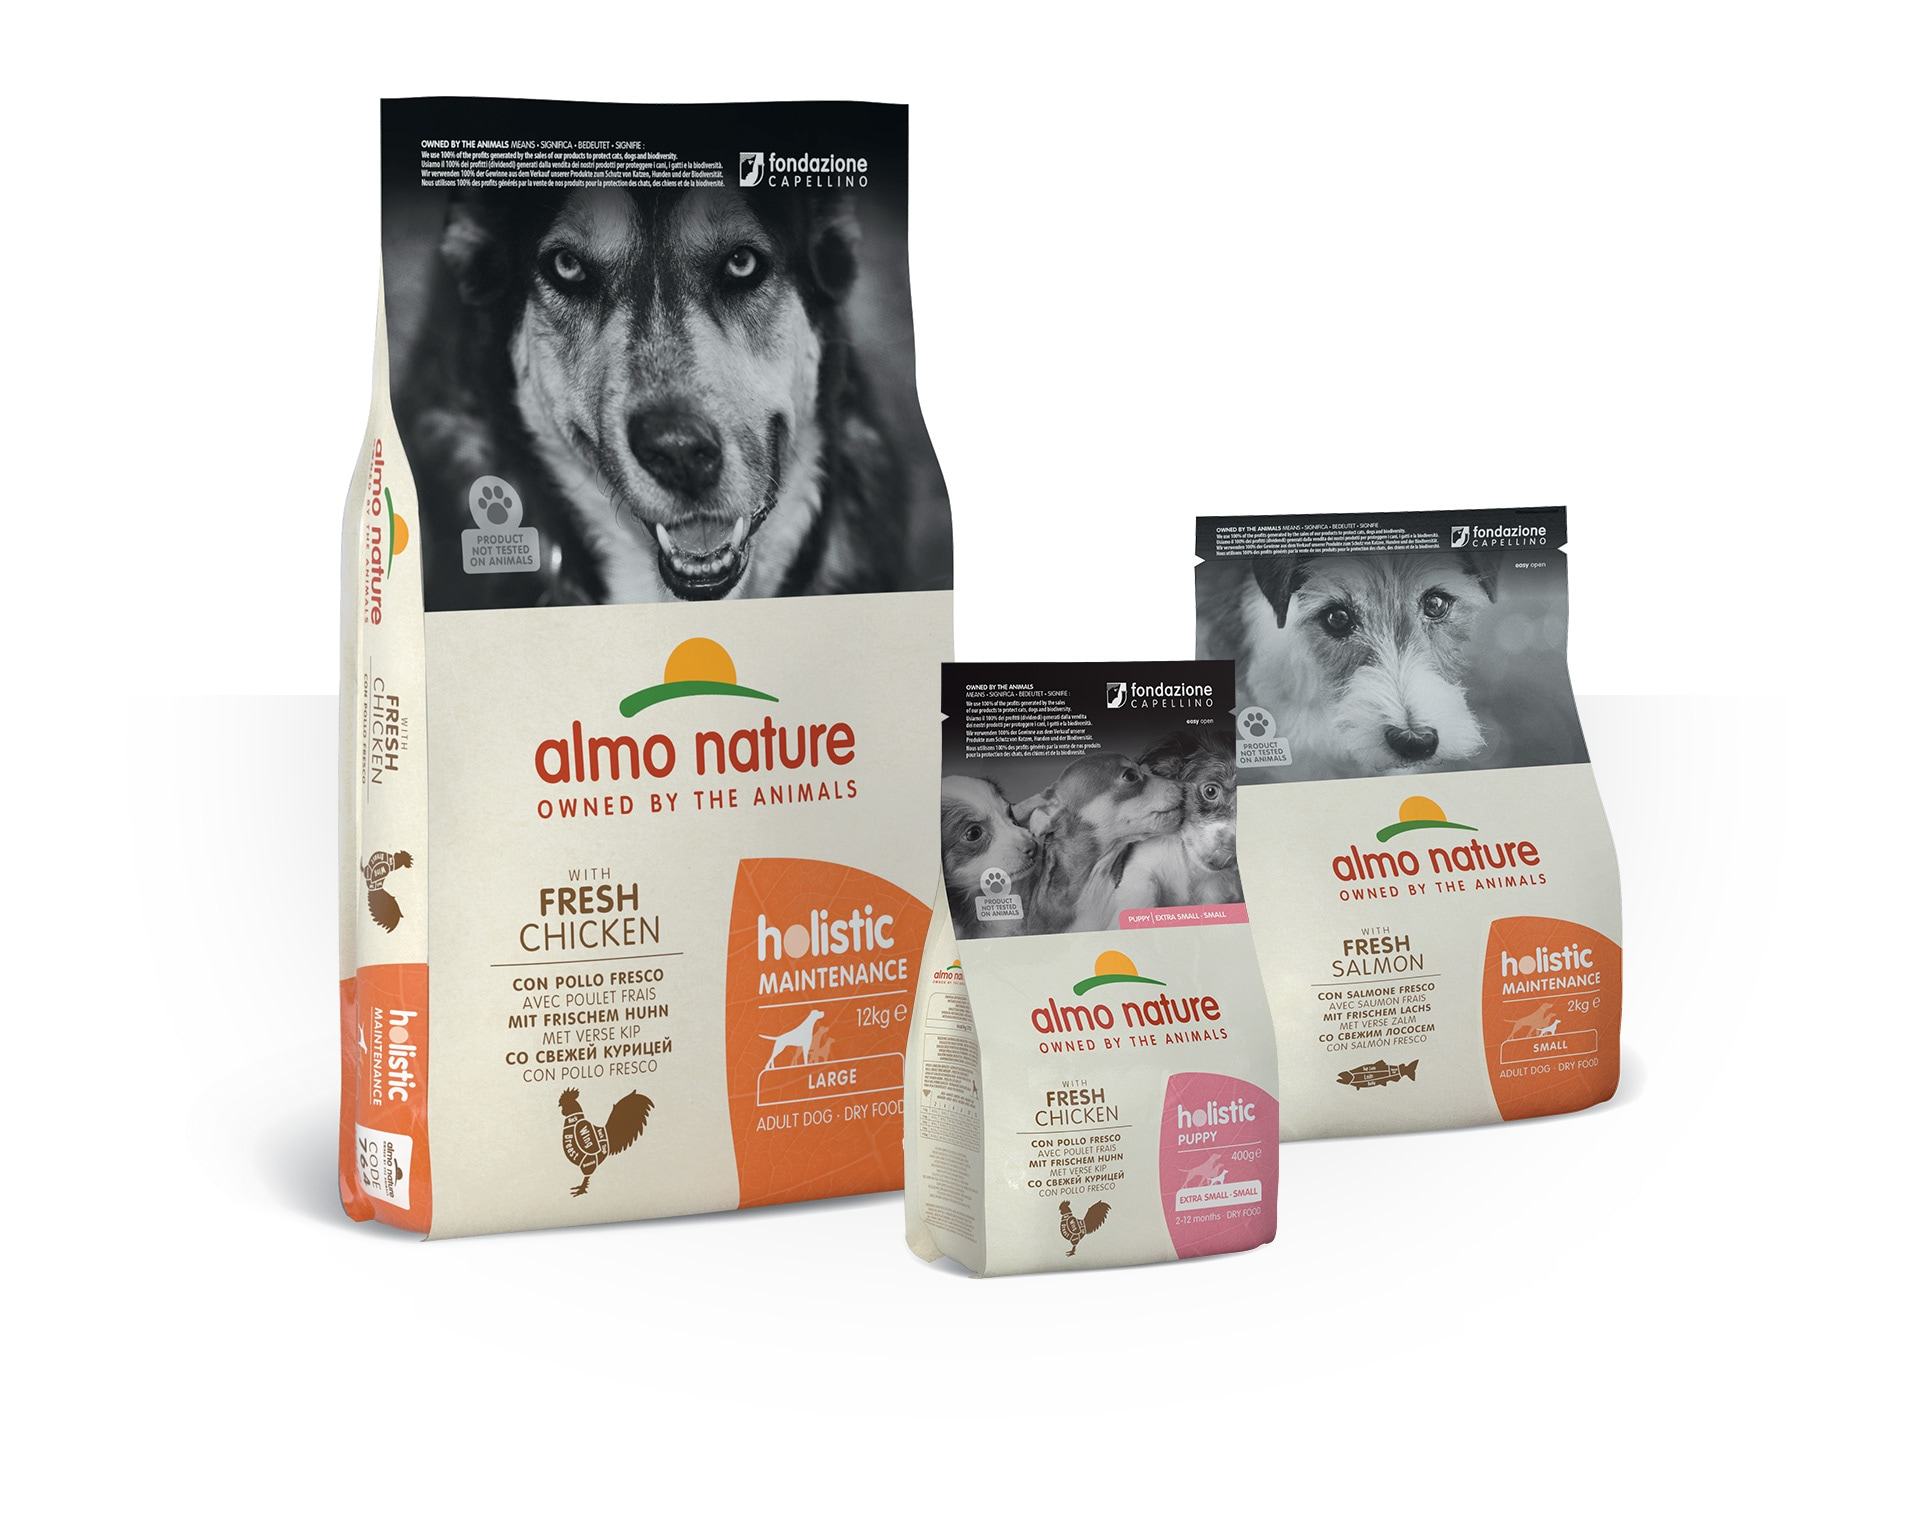 almo nature holistic dog